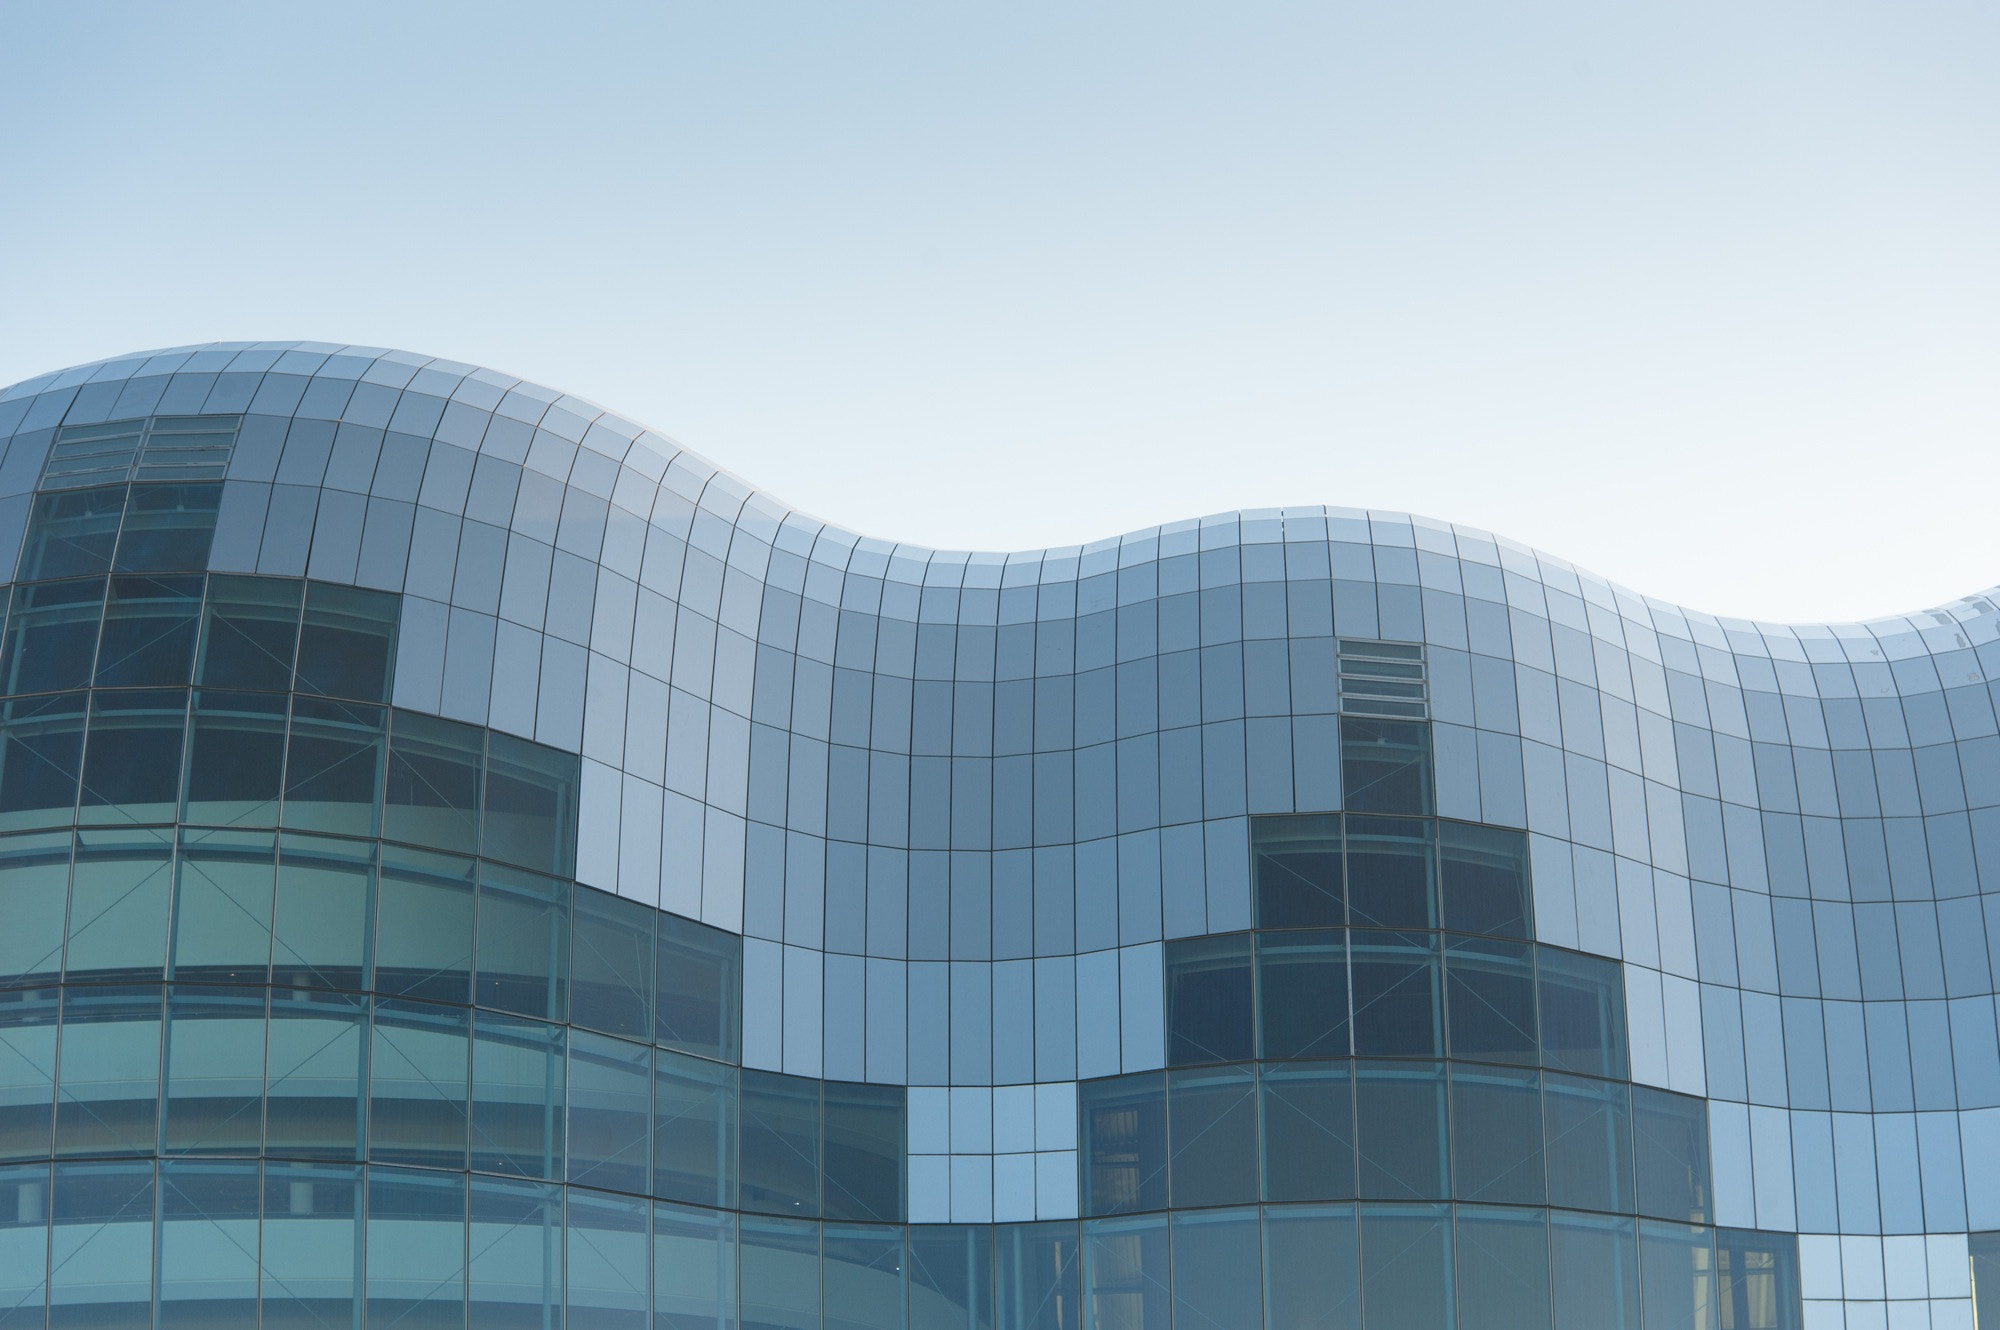 Photograph The Sage, Gateshead by Andy Tye on 500px